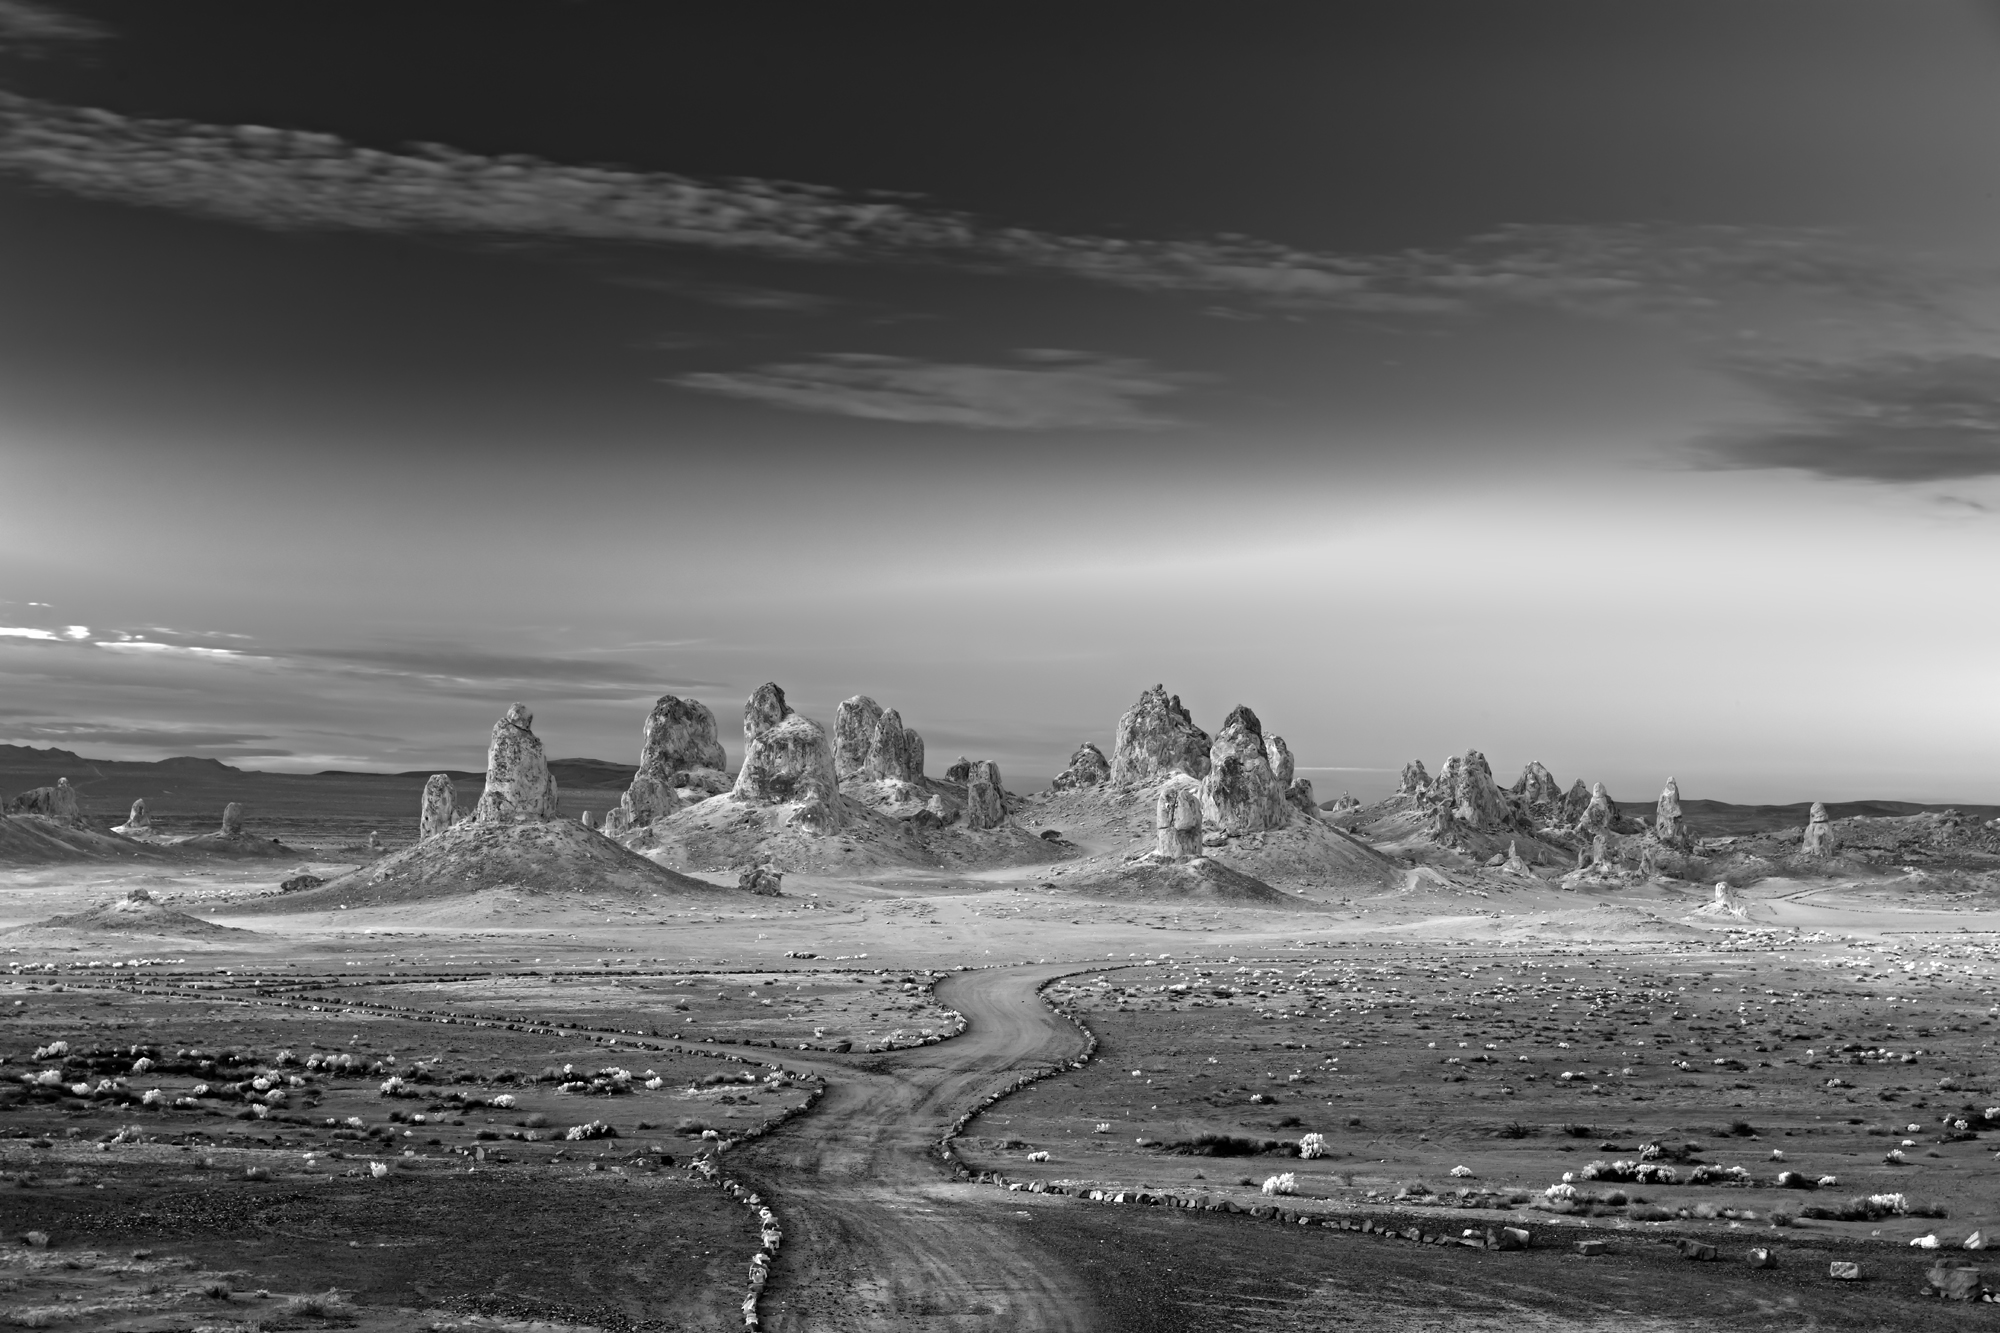 Mitch Dobrowner, Natron Sunrise, Catherine Couturier Gallery